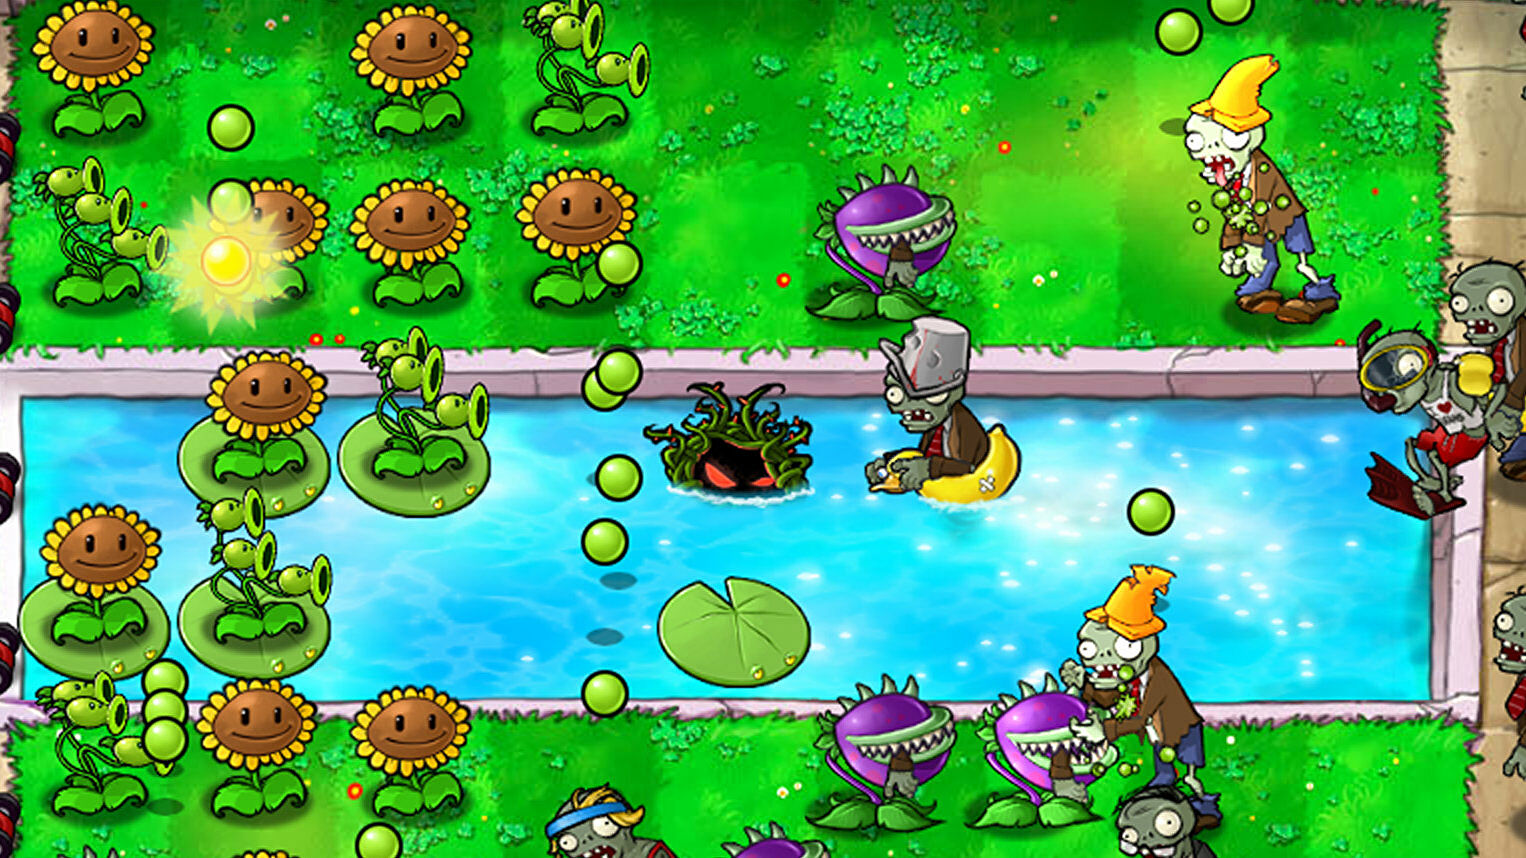 Plants vs. Zombies 3 Announced By EA: Still Under Early